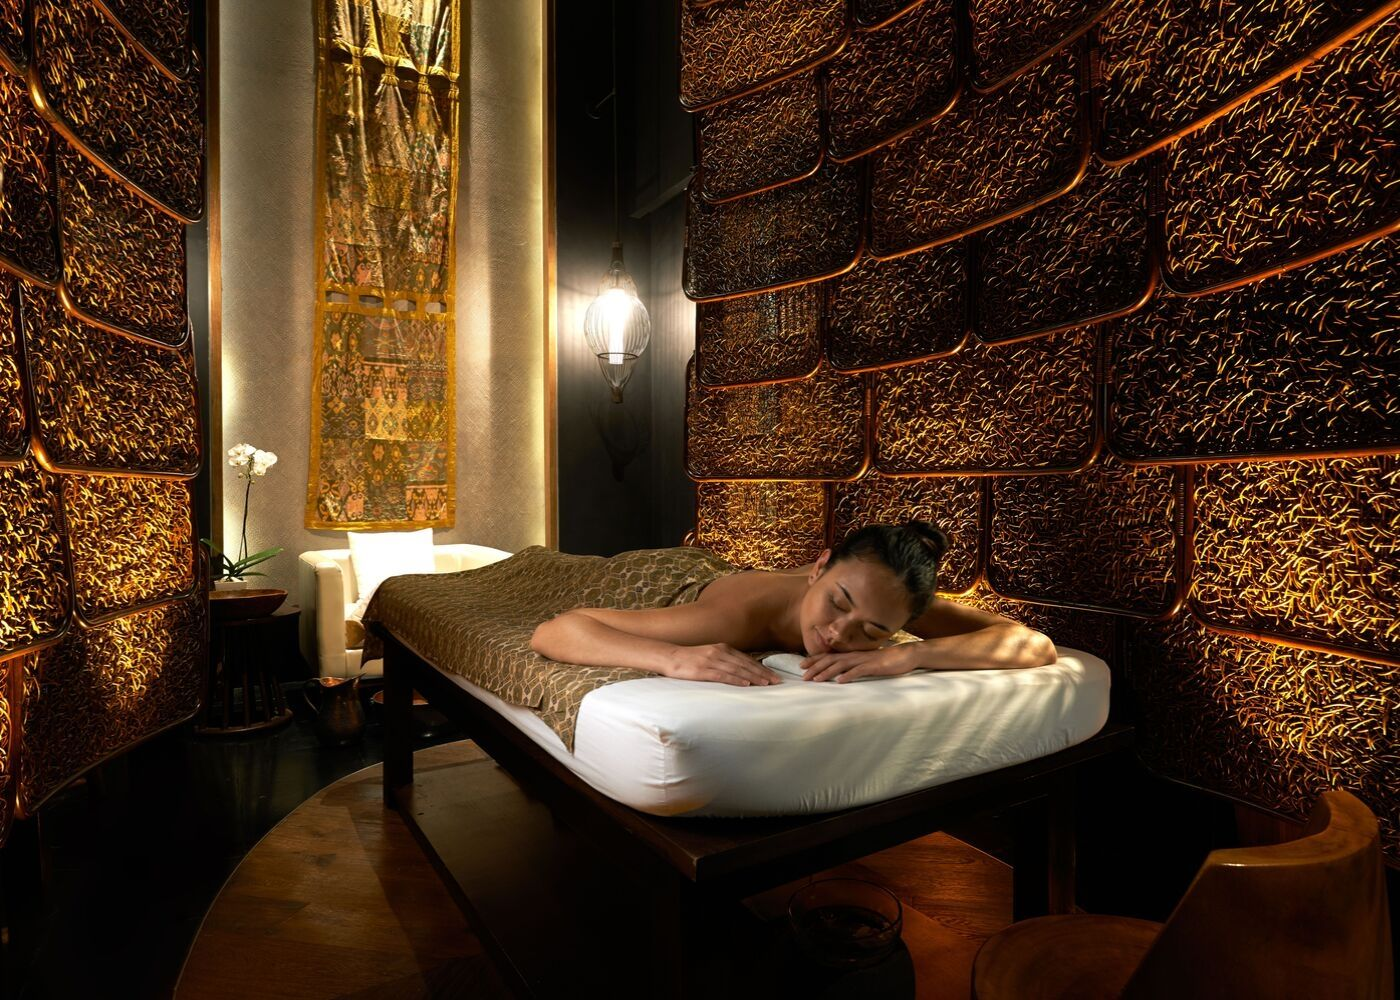 A woman enjoying spa treatments at Sofitel Bali Nusa Dua Beach Resort